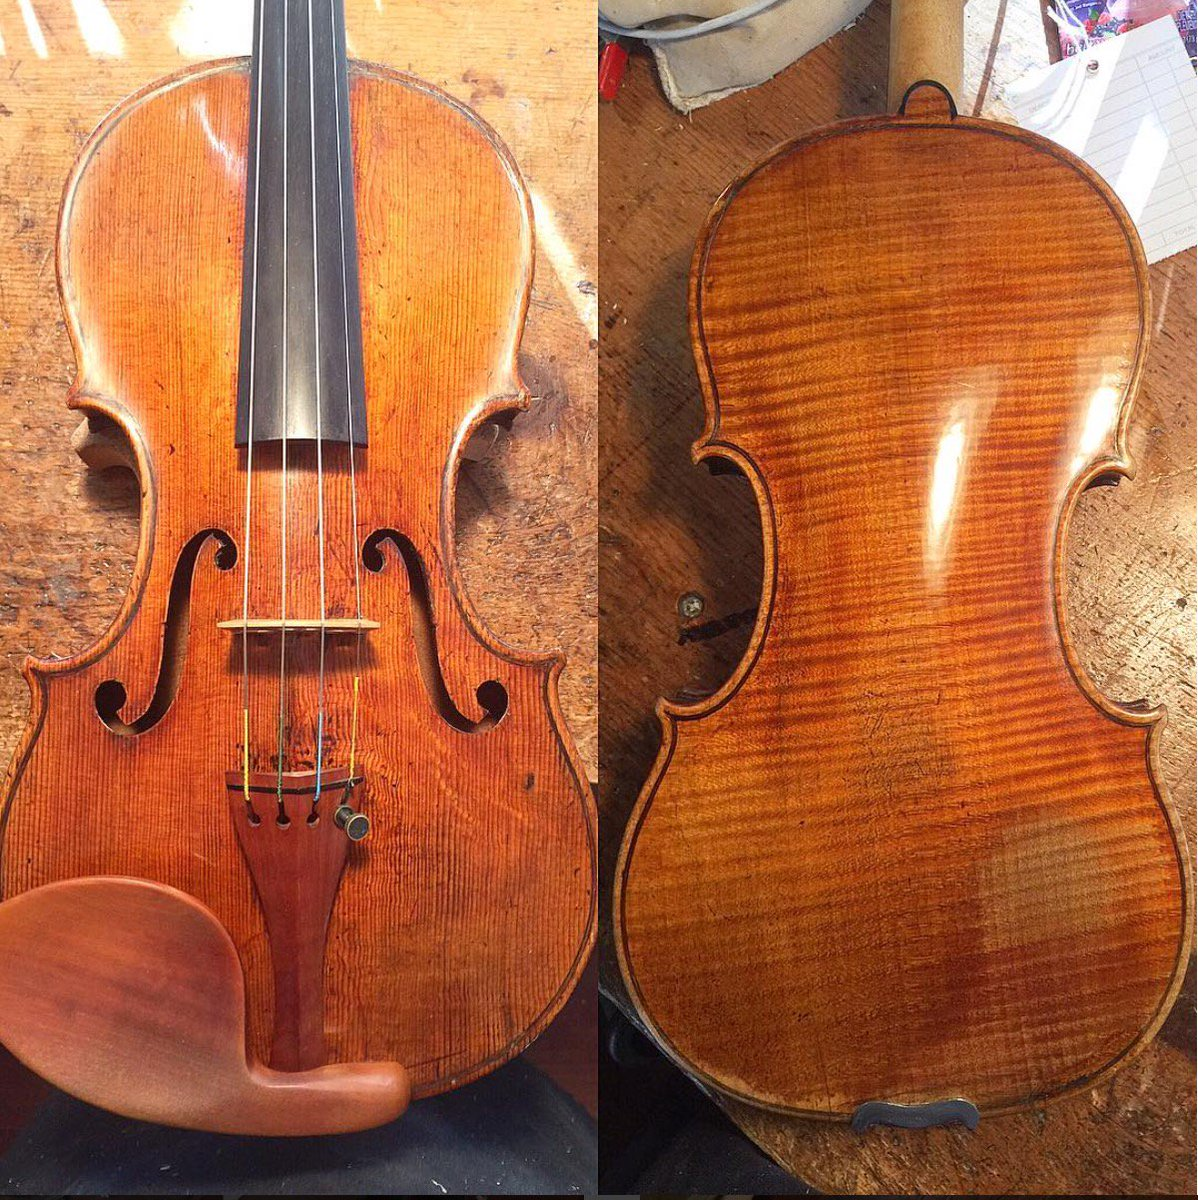 This beautiful 1715 Alessandro Gagliano violin has been keeping me company for the last few days. #violin #restoration #luthier #violinmaker<br>http://pic.twitter.com/6vpTypsULM